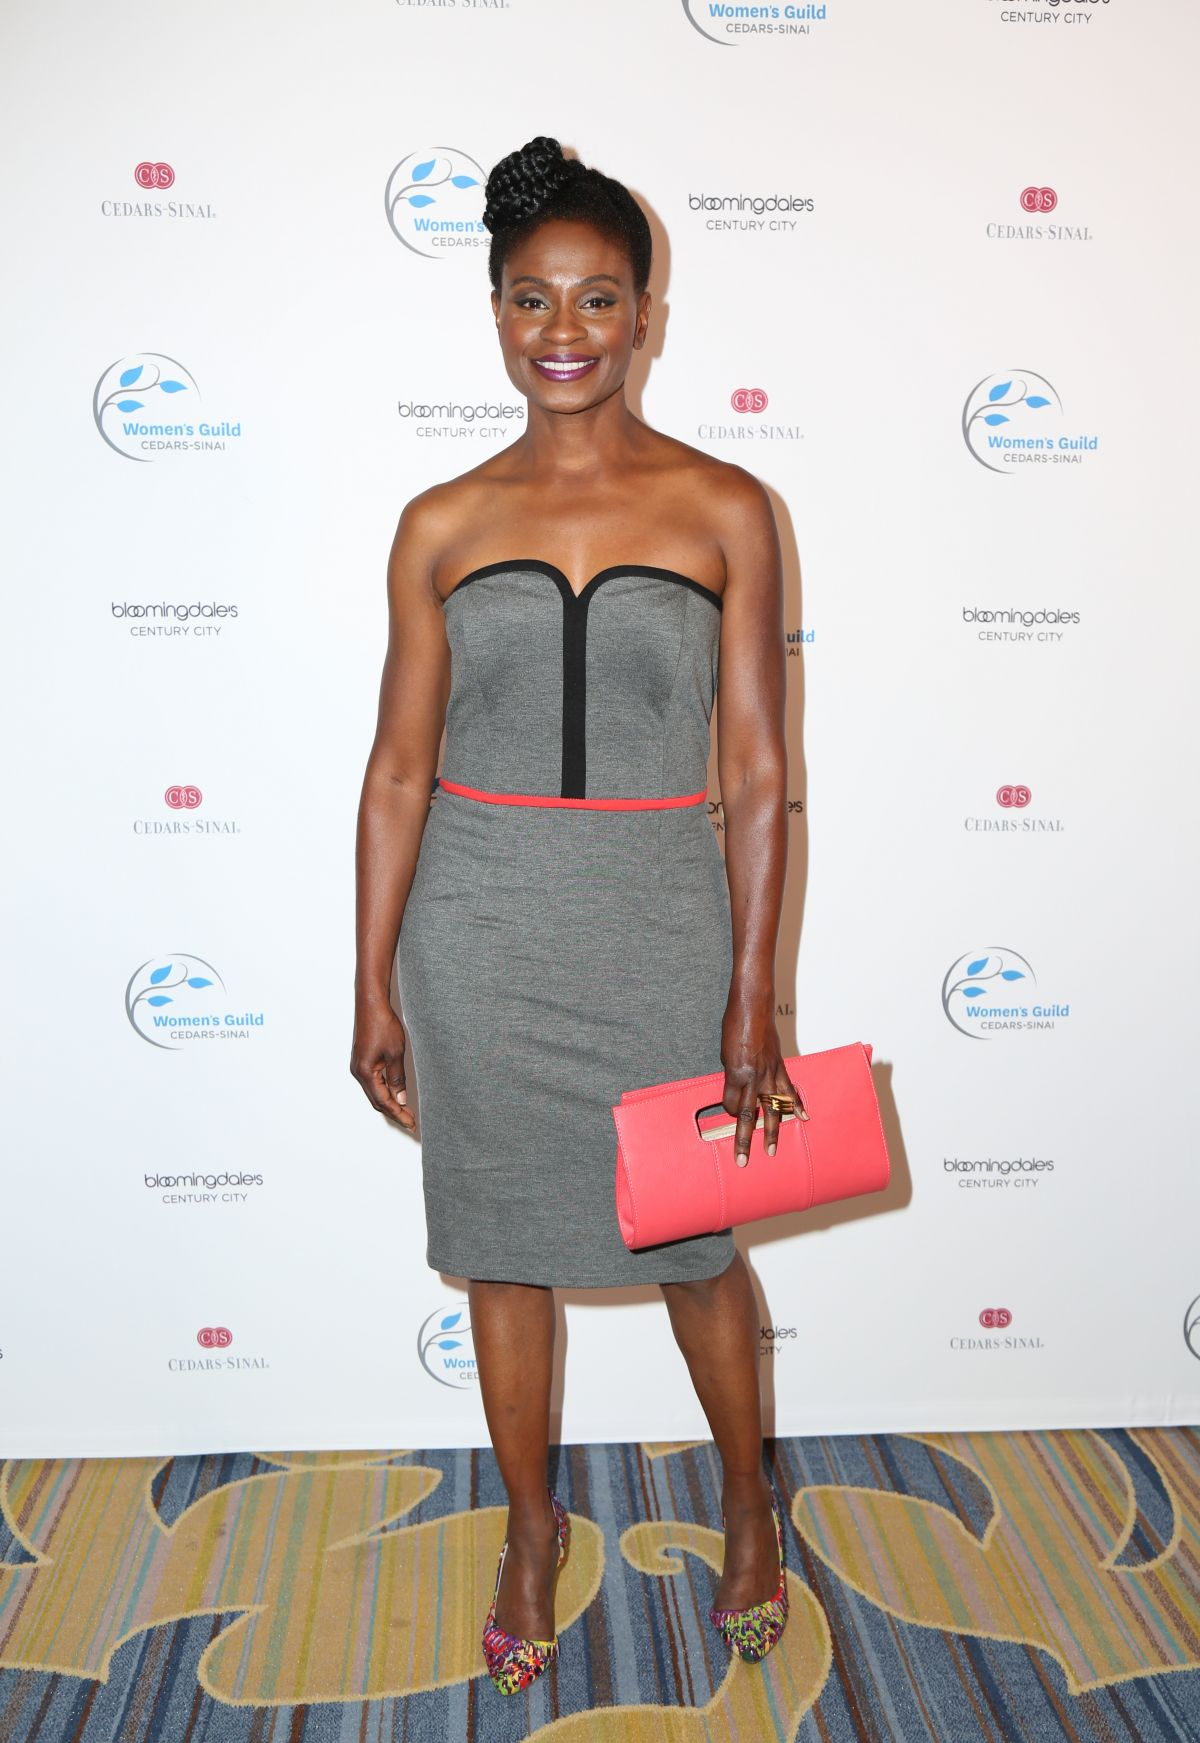 ADINA PORTER at Women's Guild Cedars Sinai Annual Spring Luncheon in Los Angeles 04/20/2017   adina-porter-at-women-s-guild-cedars-sinai-annual-spring-luncheon-in-los-angeles-04-20-2017_4